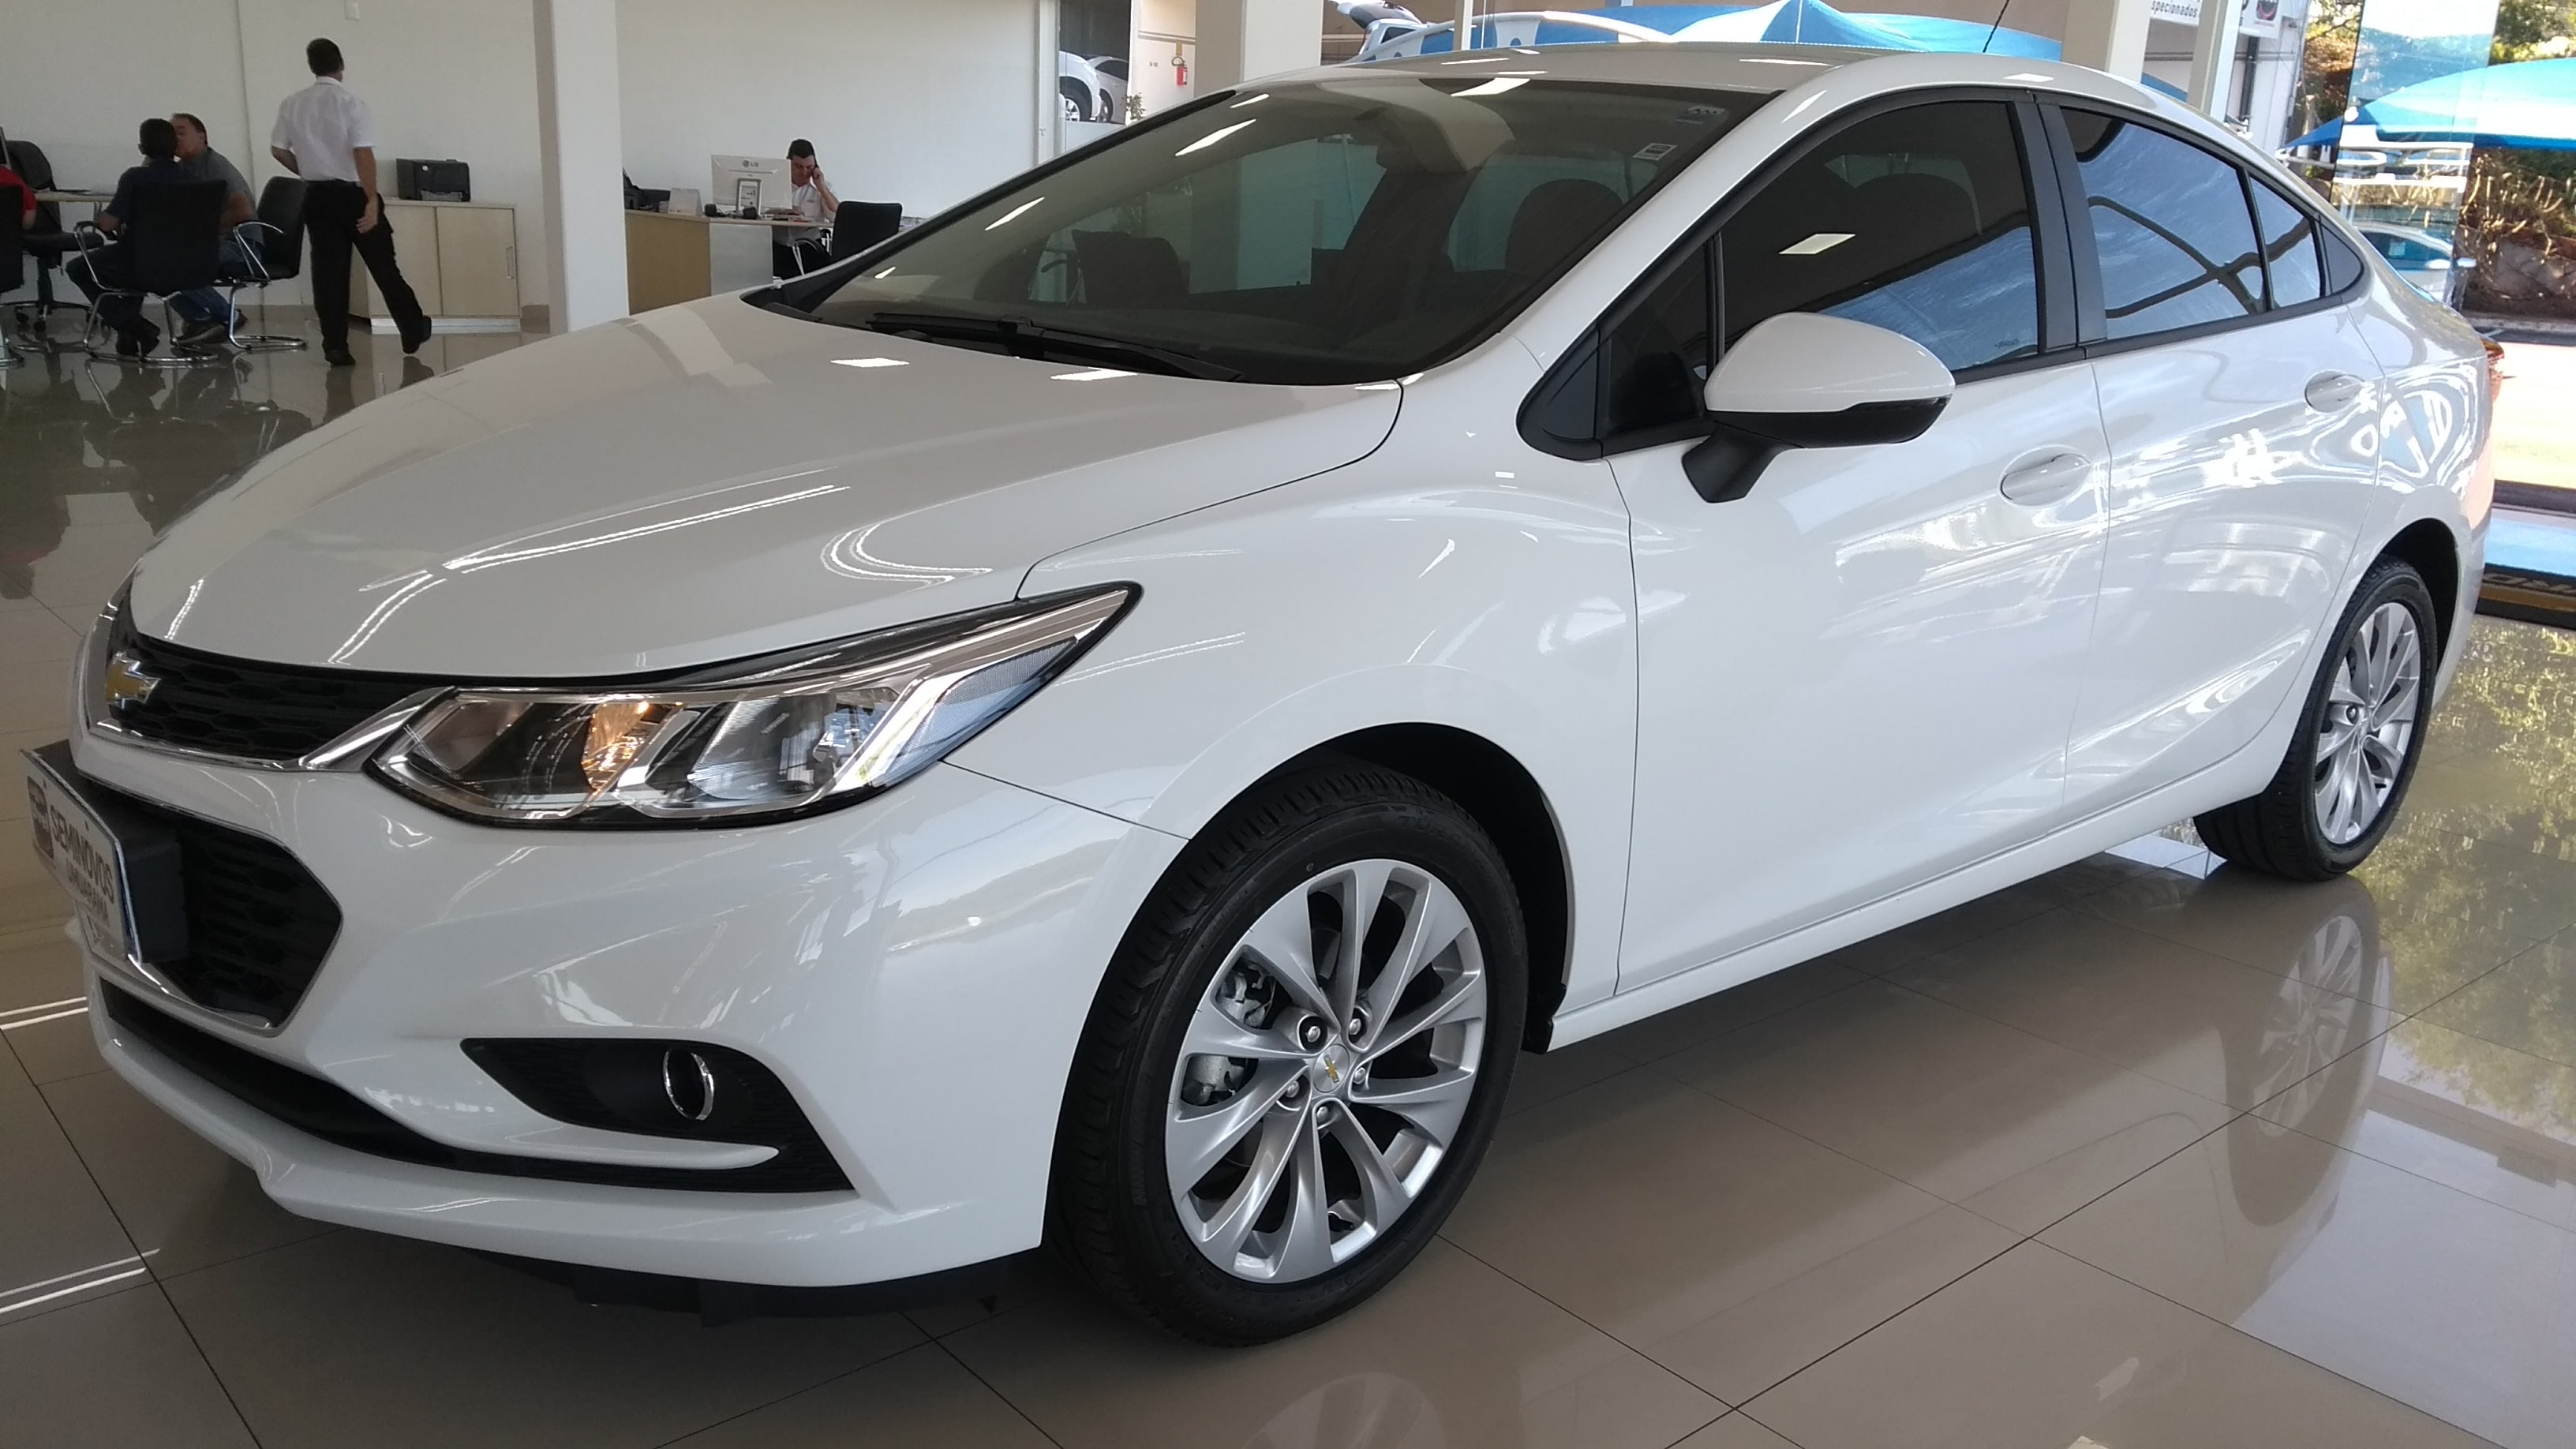 CHEVROLET CRUZE LT 1.4 TURBO 2018